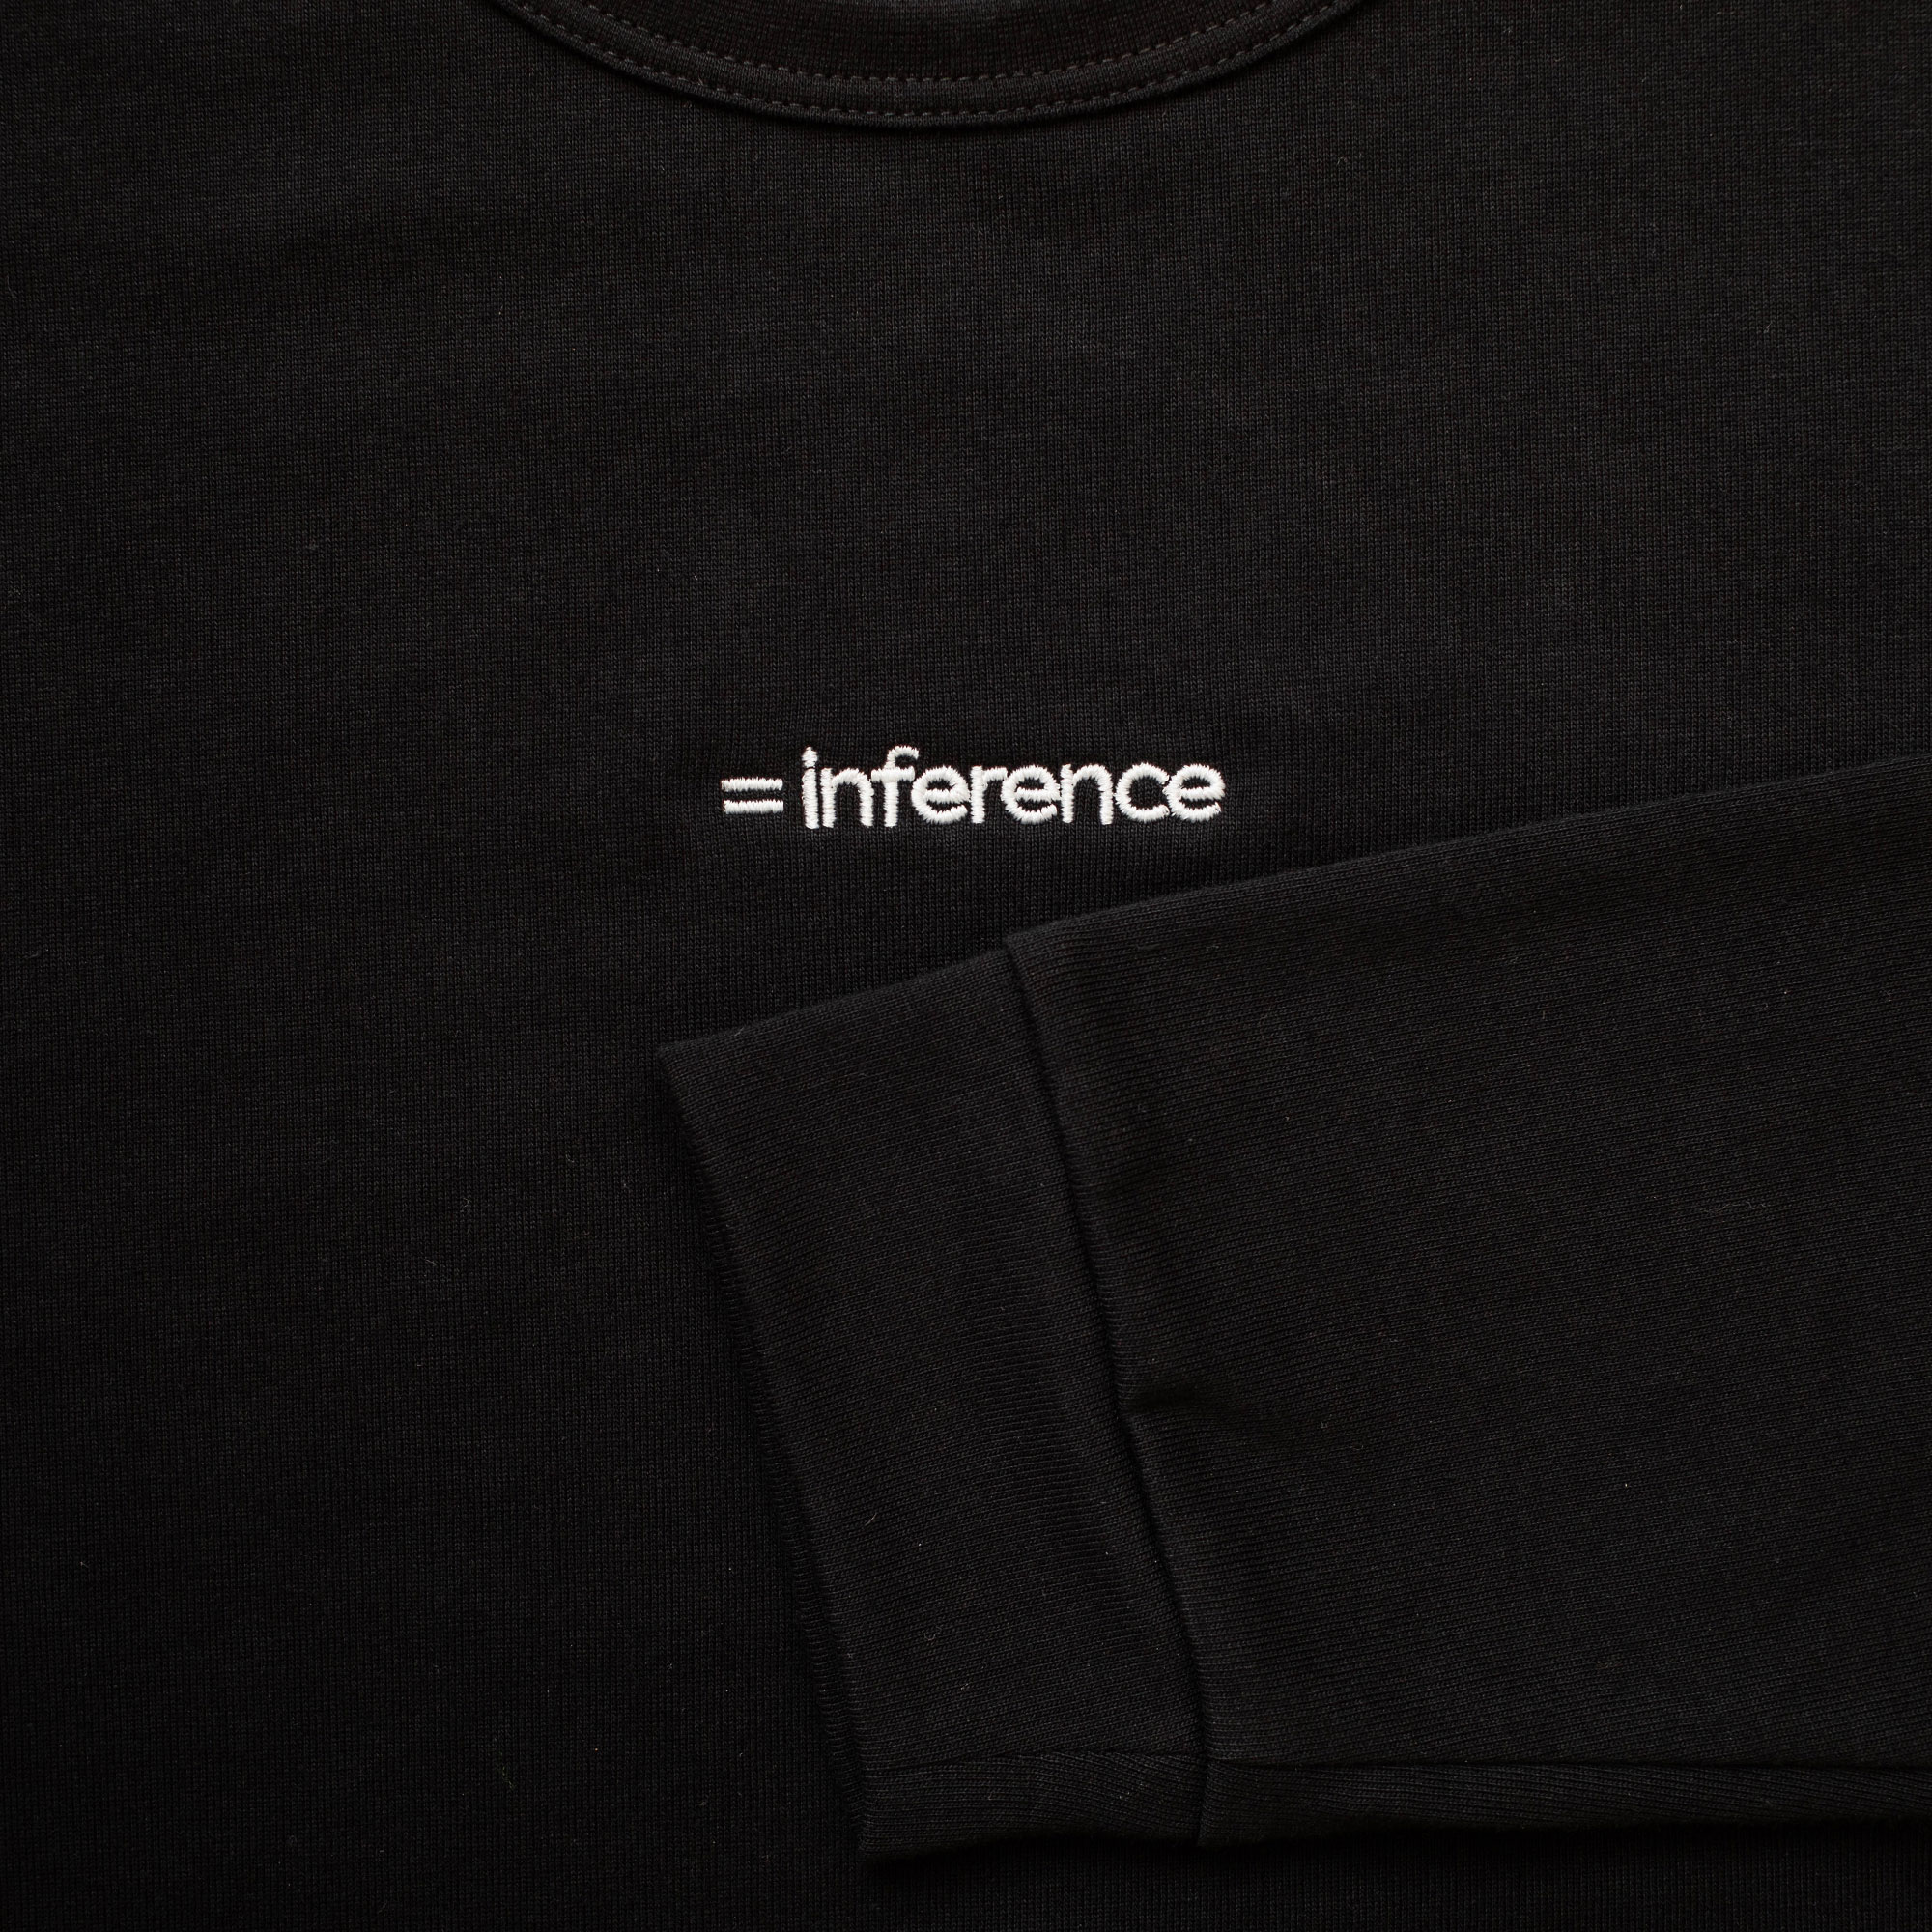 Inference Embroired longsleeve